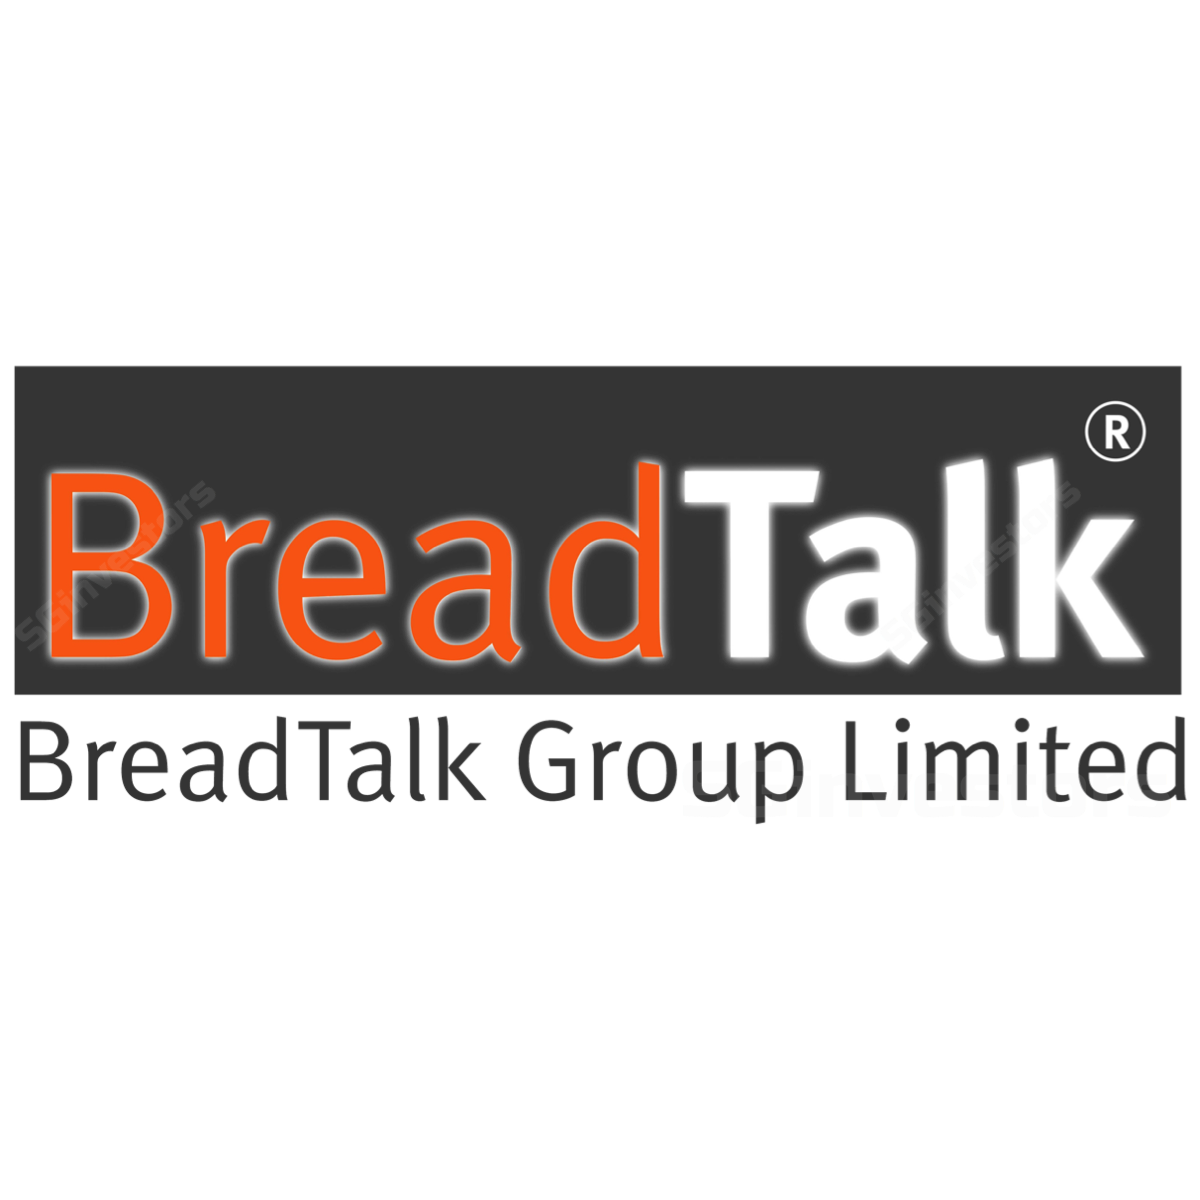 BreadTalk Group Ltd - DBS Group Research Research 2018-08-06: Time To Lock In Gains